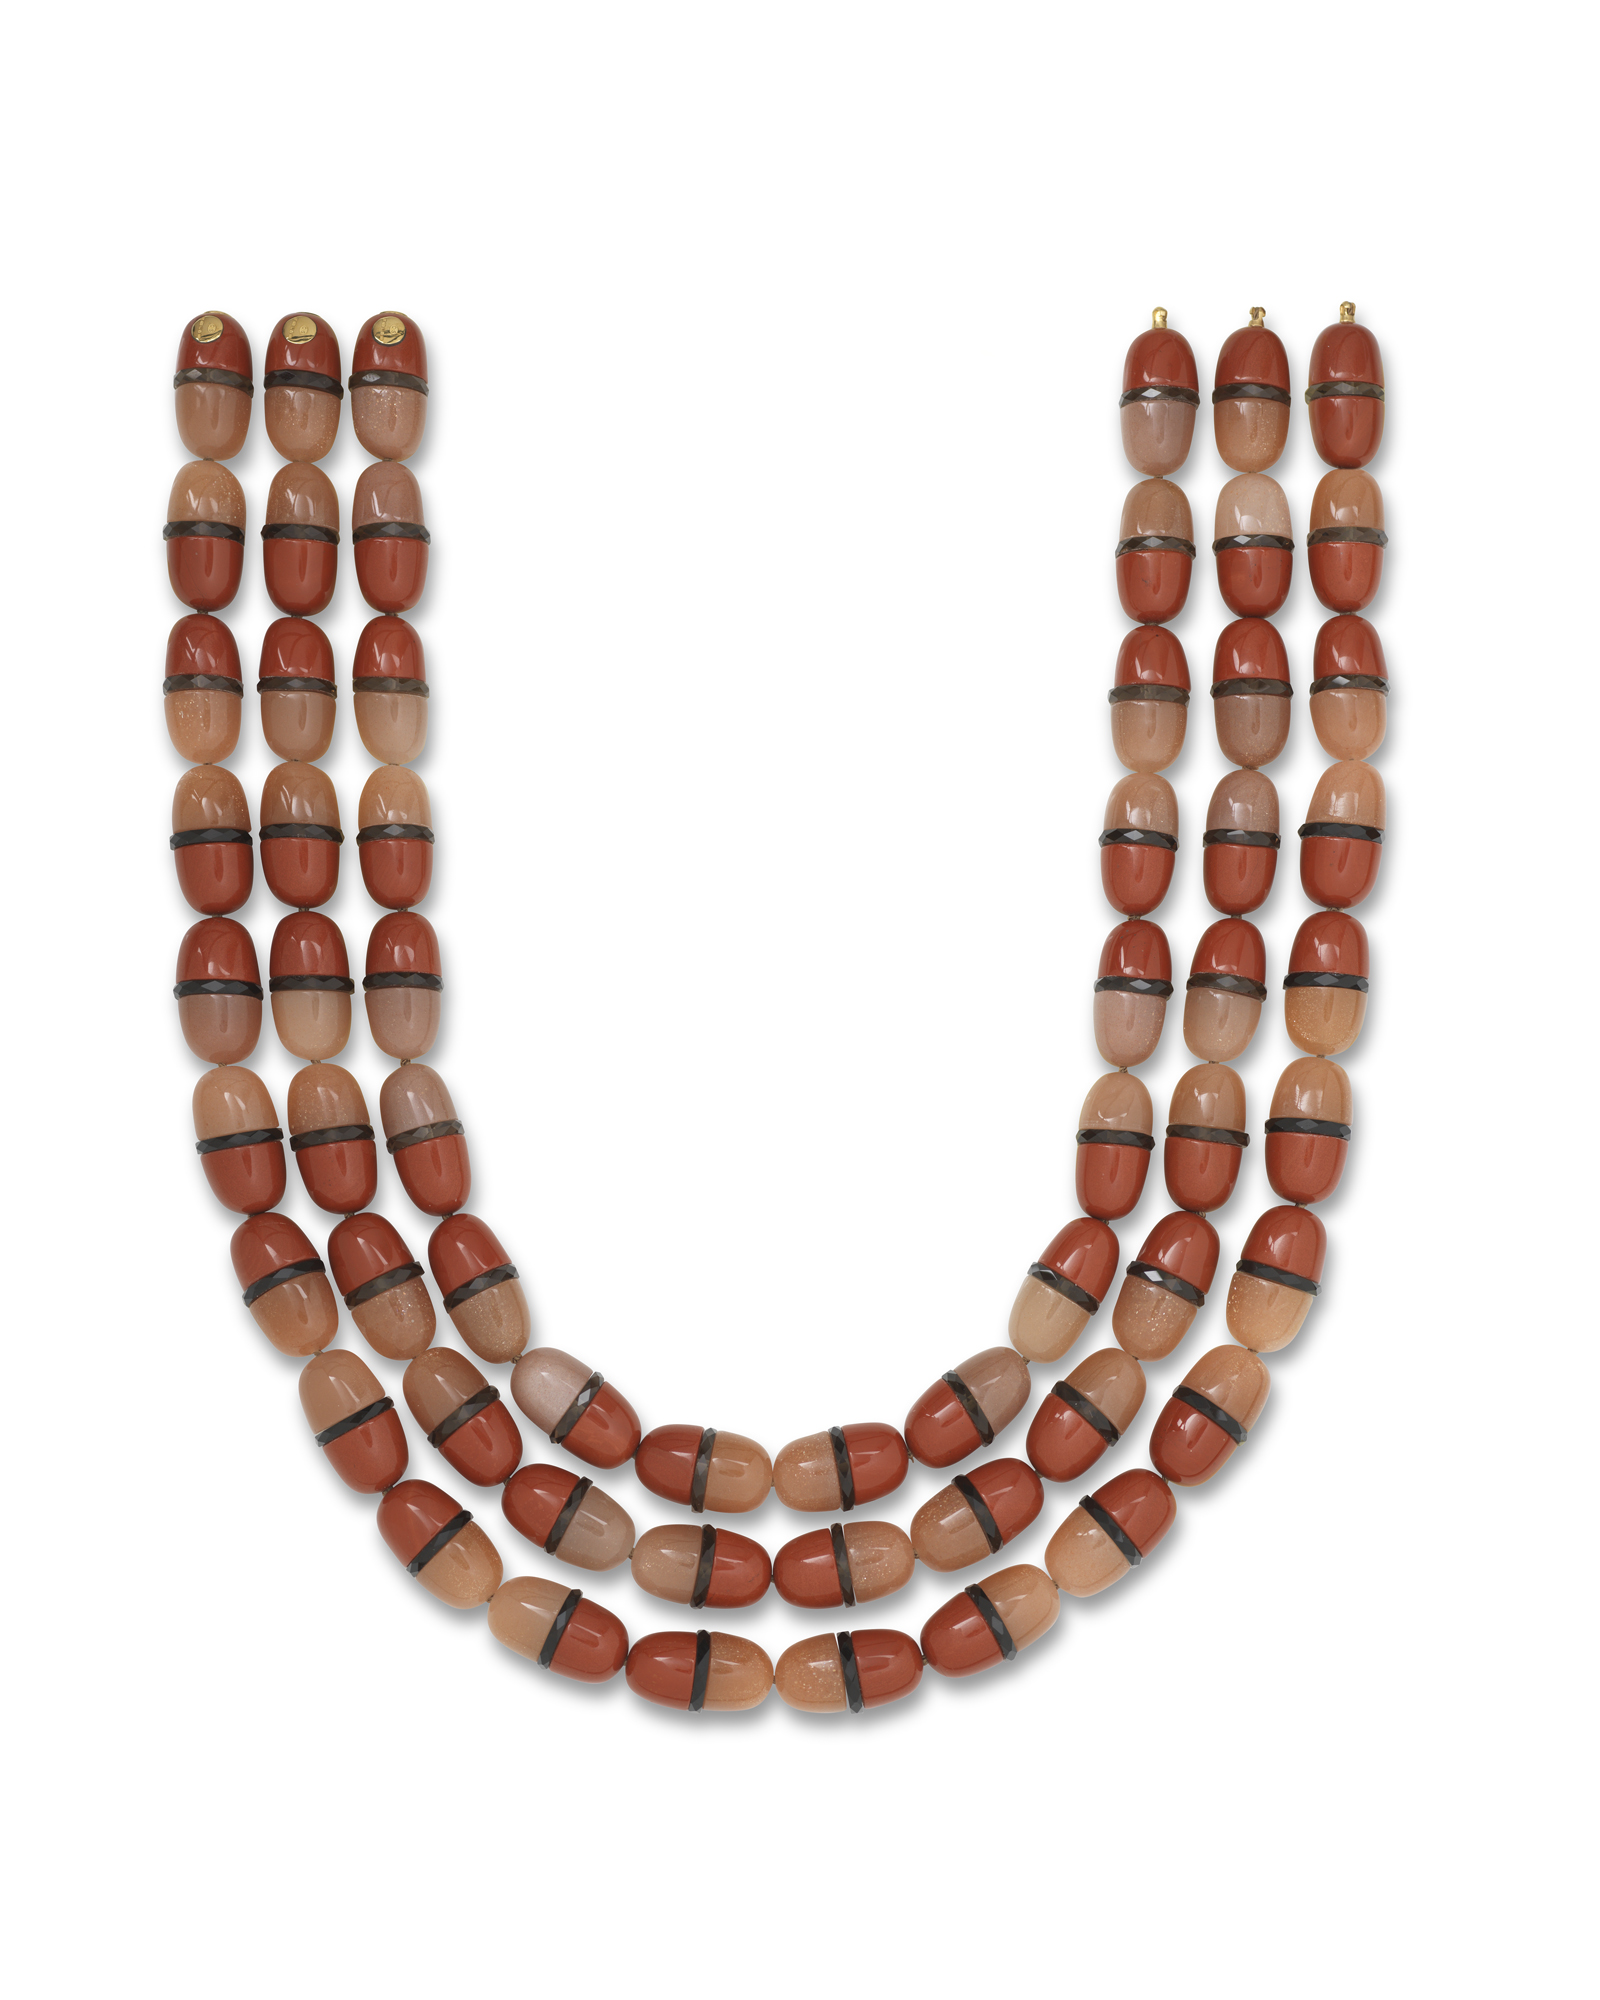 776 Pill necklace